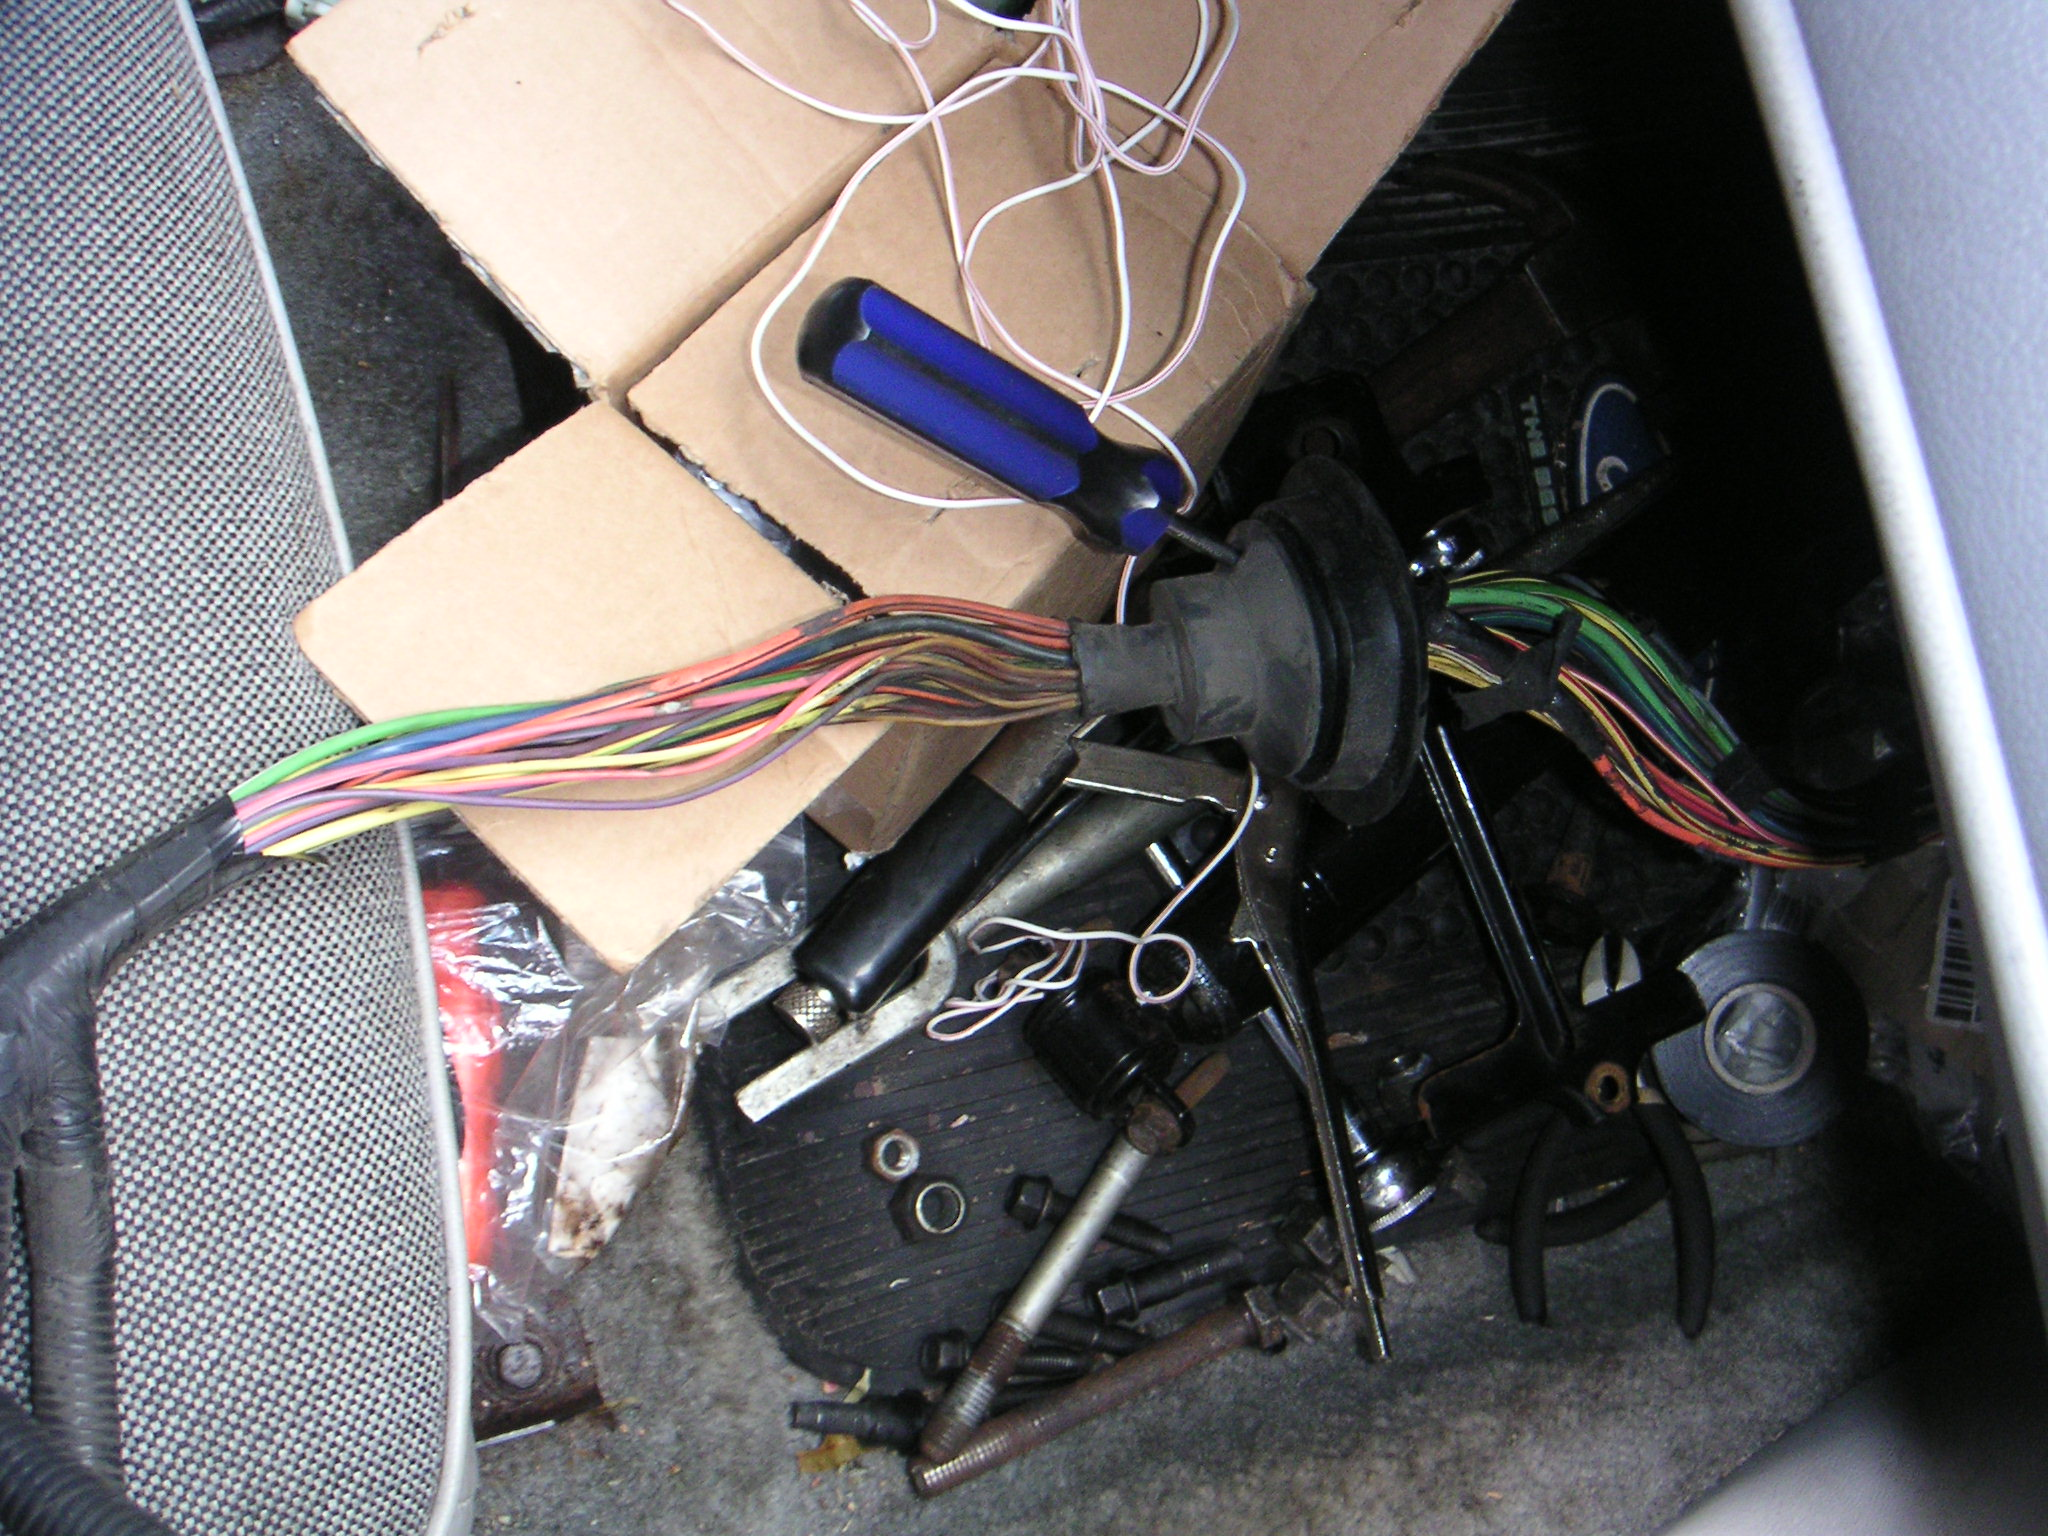 car wiring harness repair cost polaris wiring harness repair kit ford crown victoria wiring harness problems